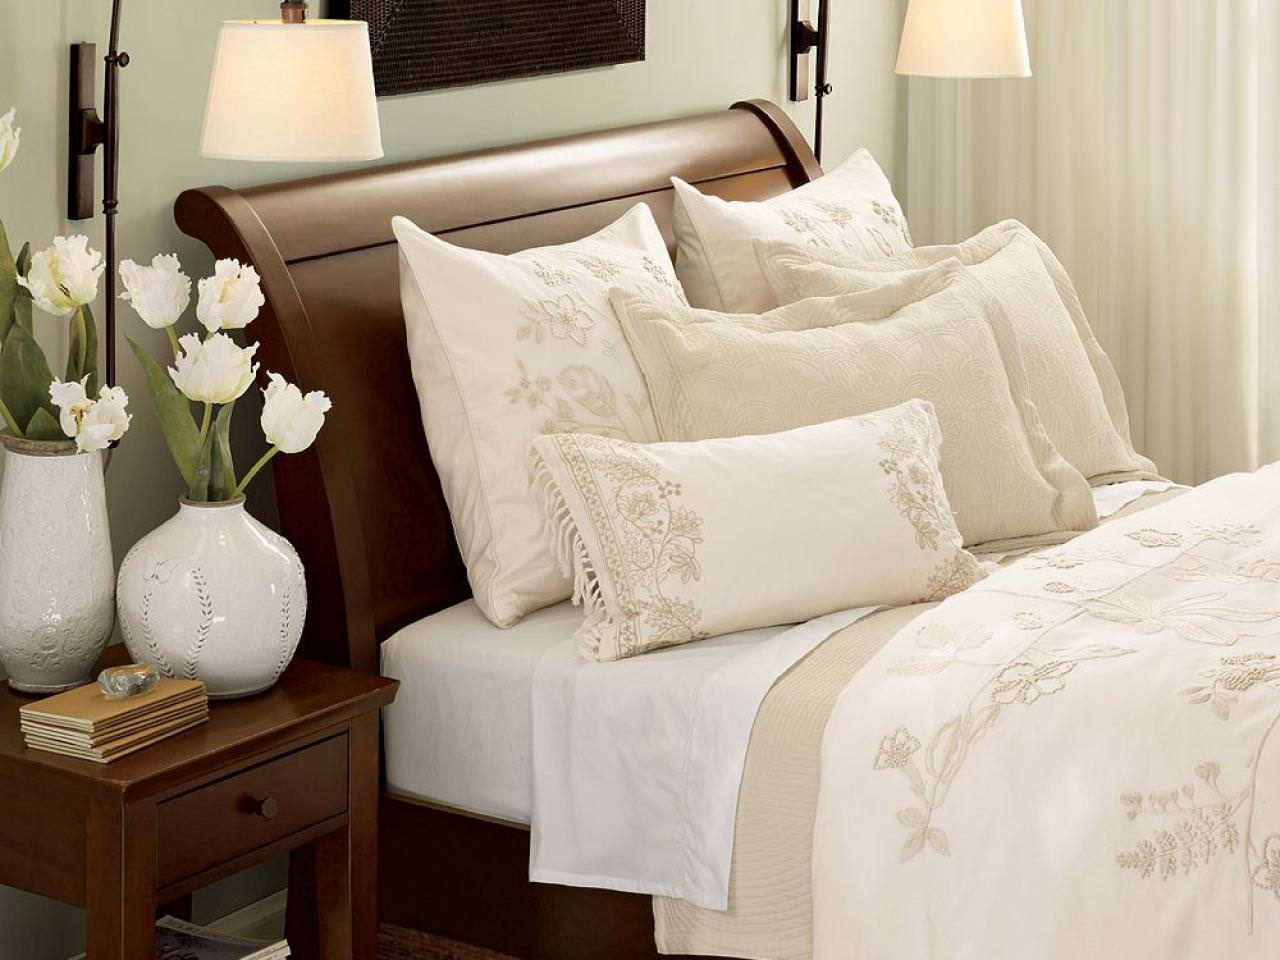 Pottery Barn Sleigh Bed | Upholstered Bed Frames | Wood Headboard for Queen Size Bed